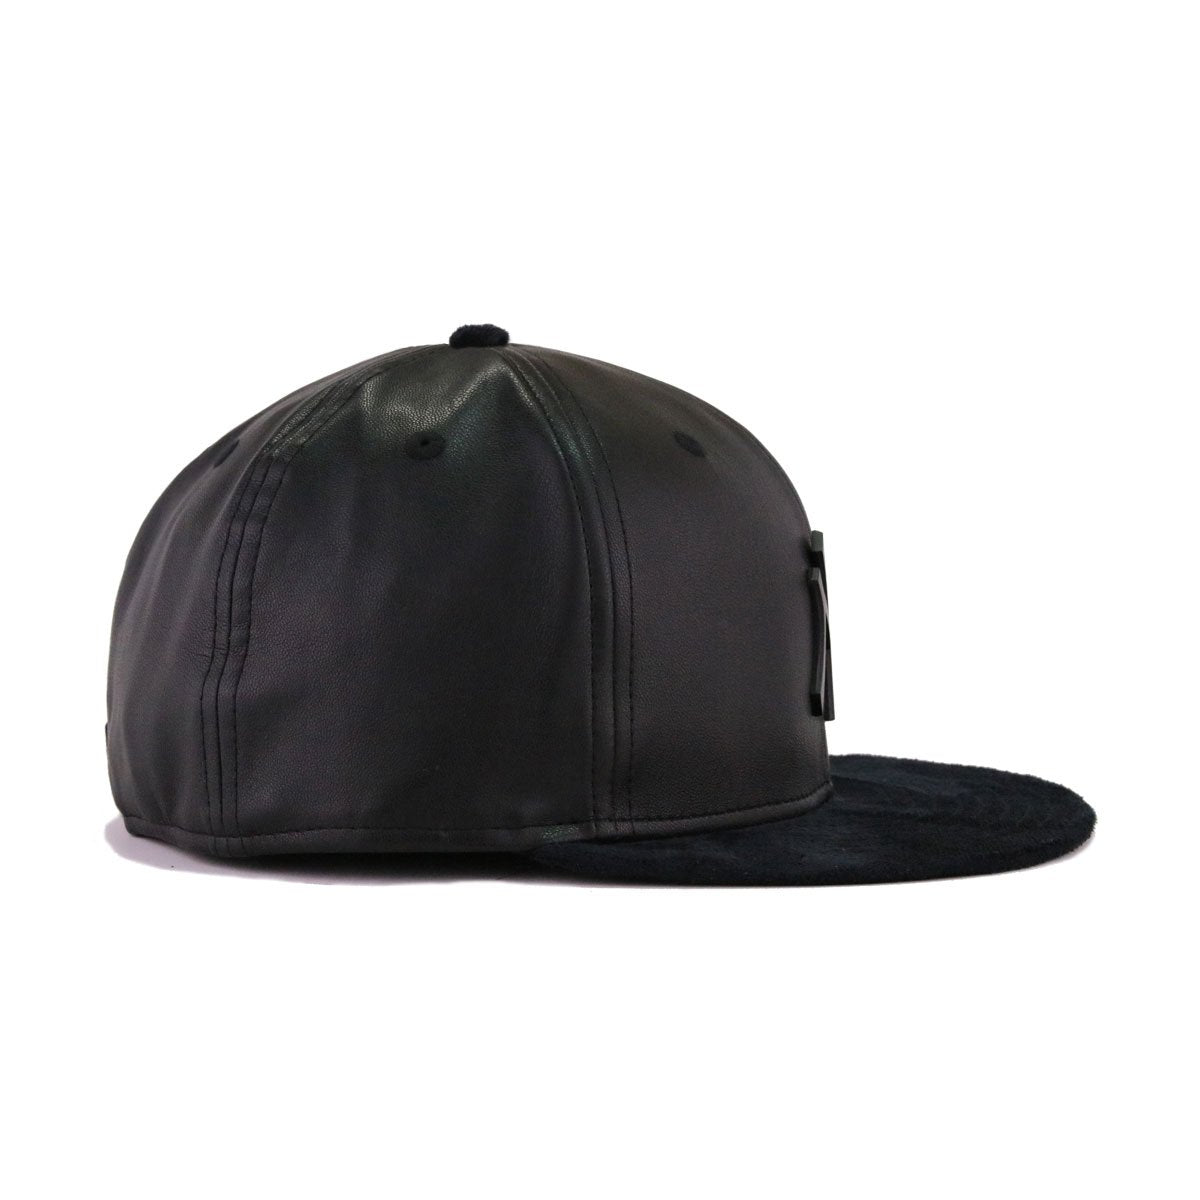 New York Yankees Black Leather Black Suede New Era Metal Badge 59Fifty Fitted